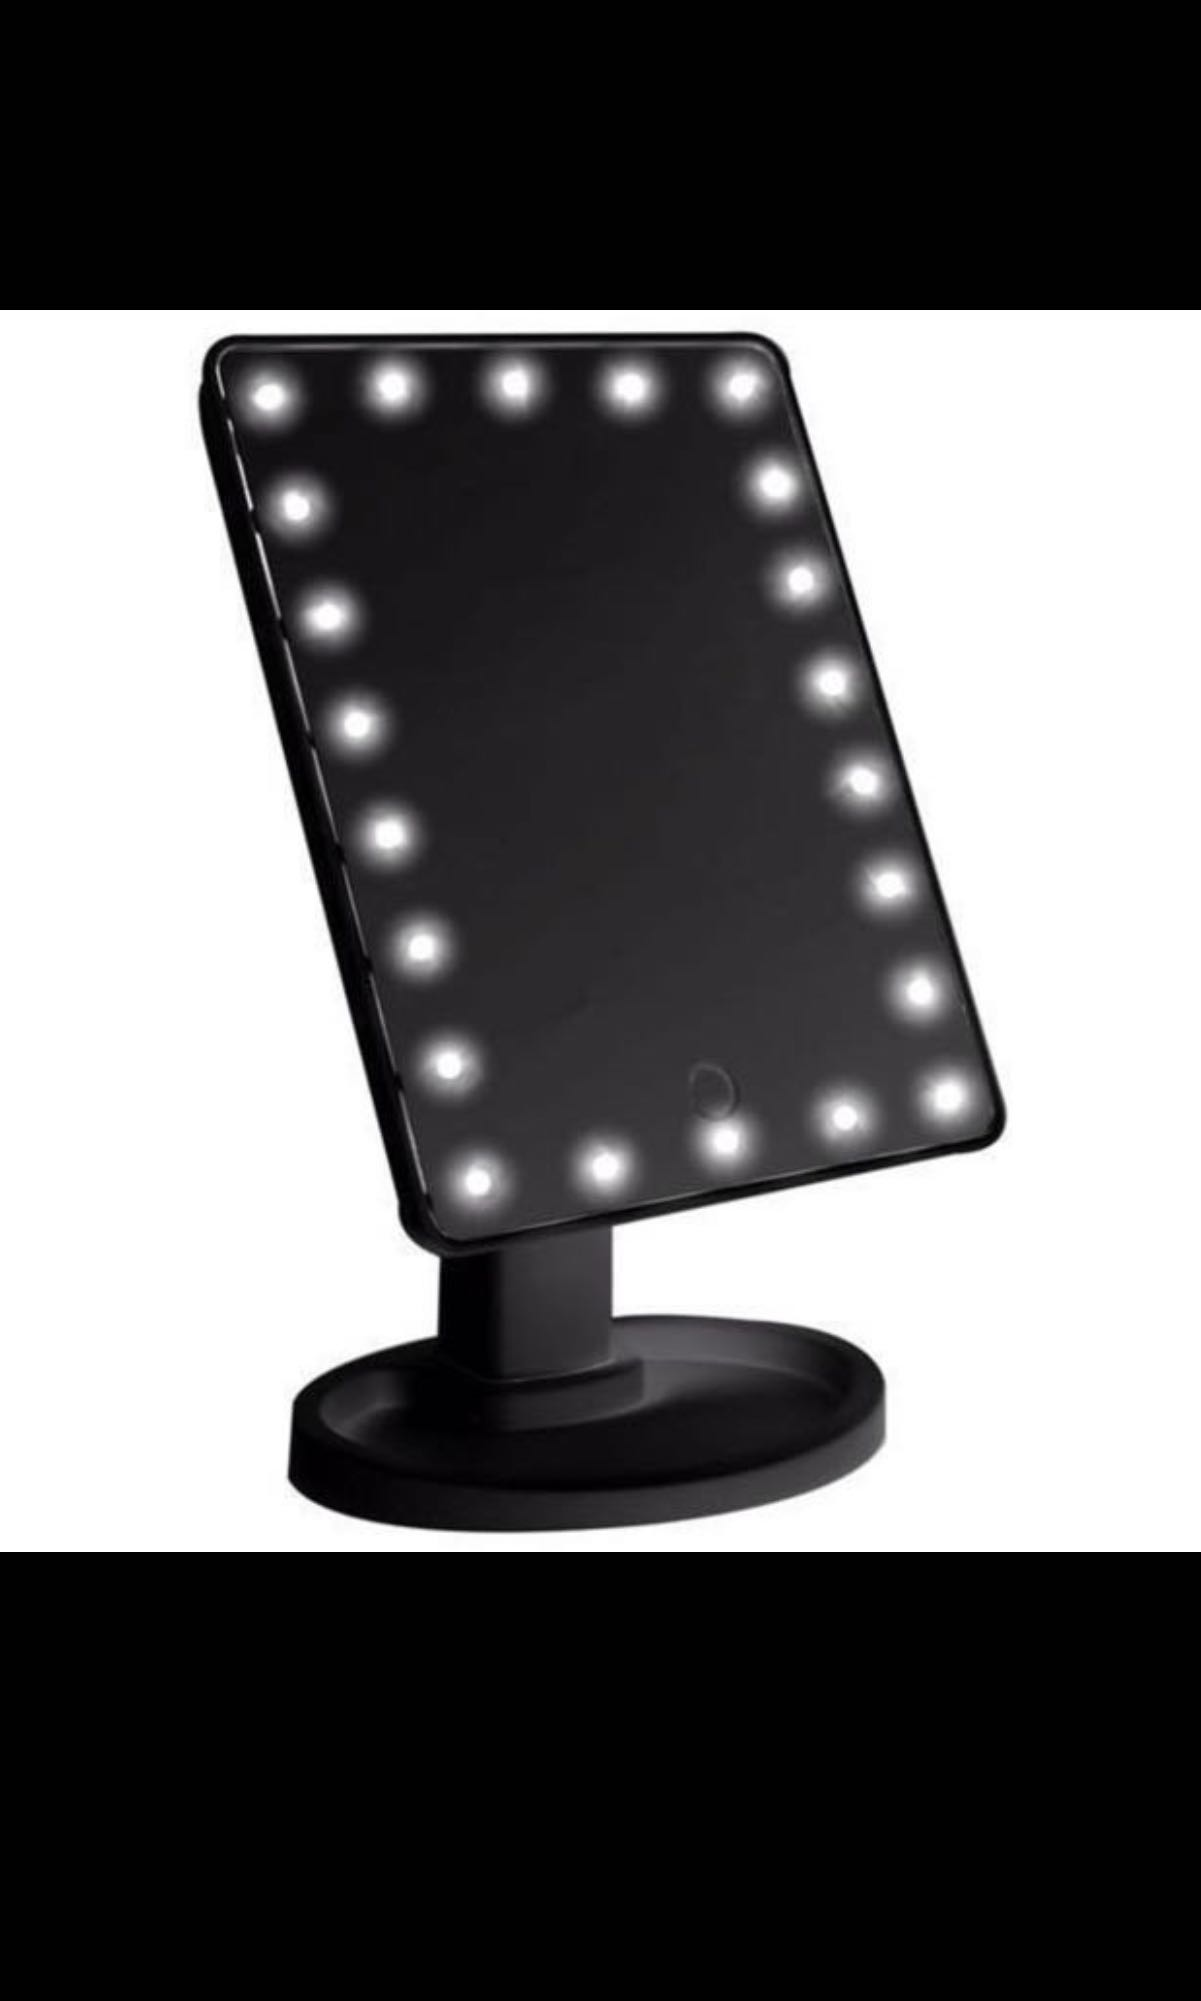 LED MIRROR READY BLACK AND WHITE